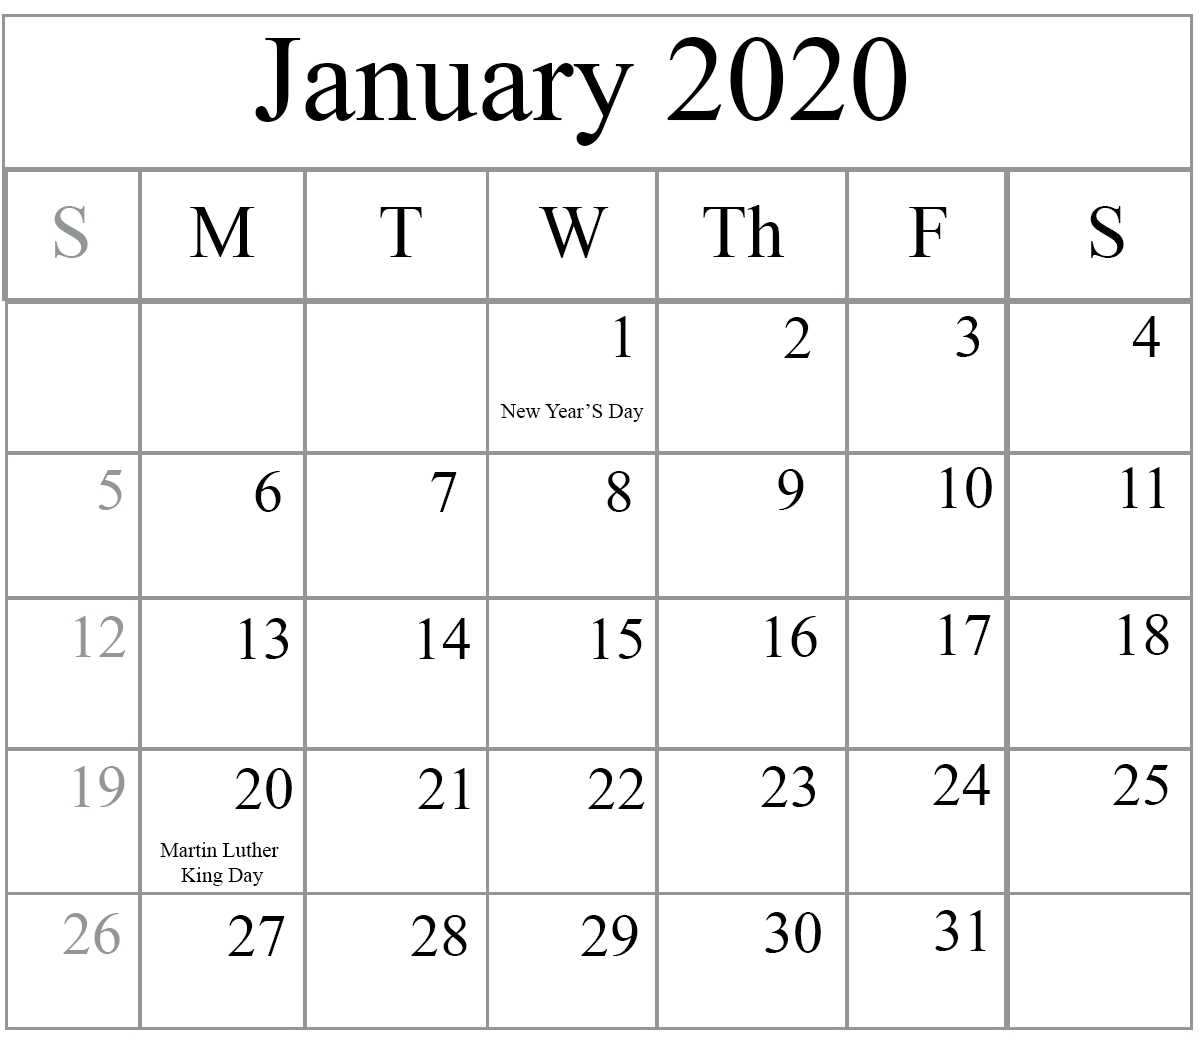 Free January 2020 Printable Calendar In Pdf, Excel & Word throughout Printable 2020 Calendar I Can Edit